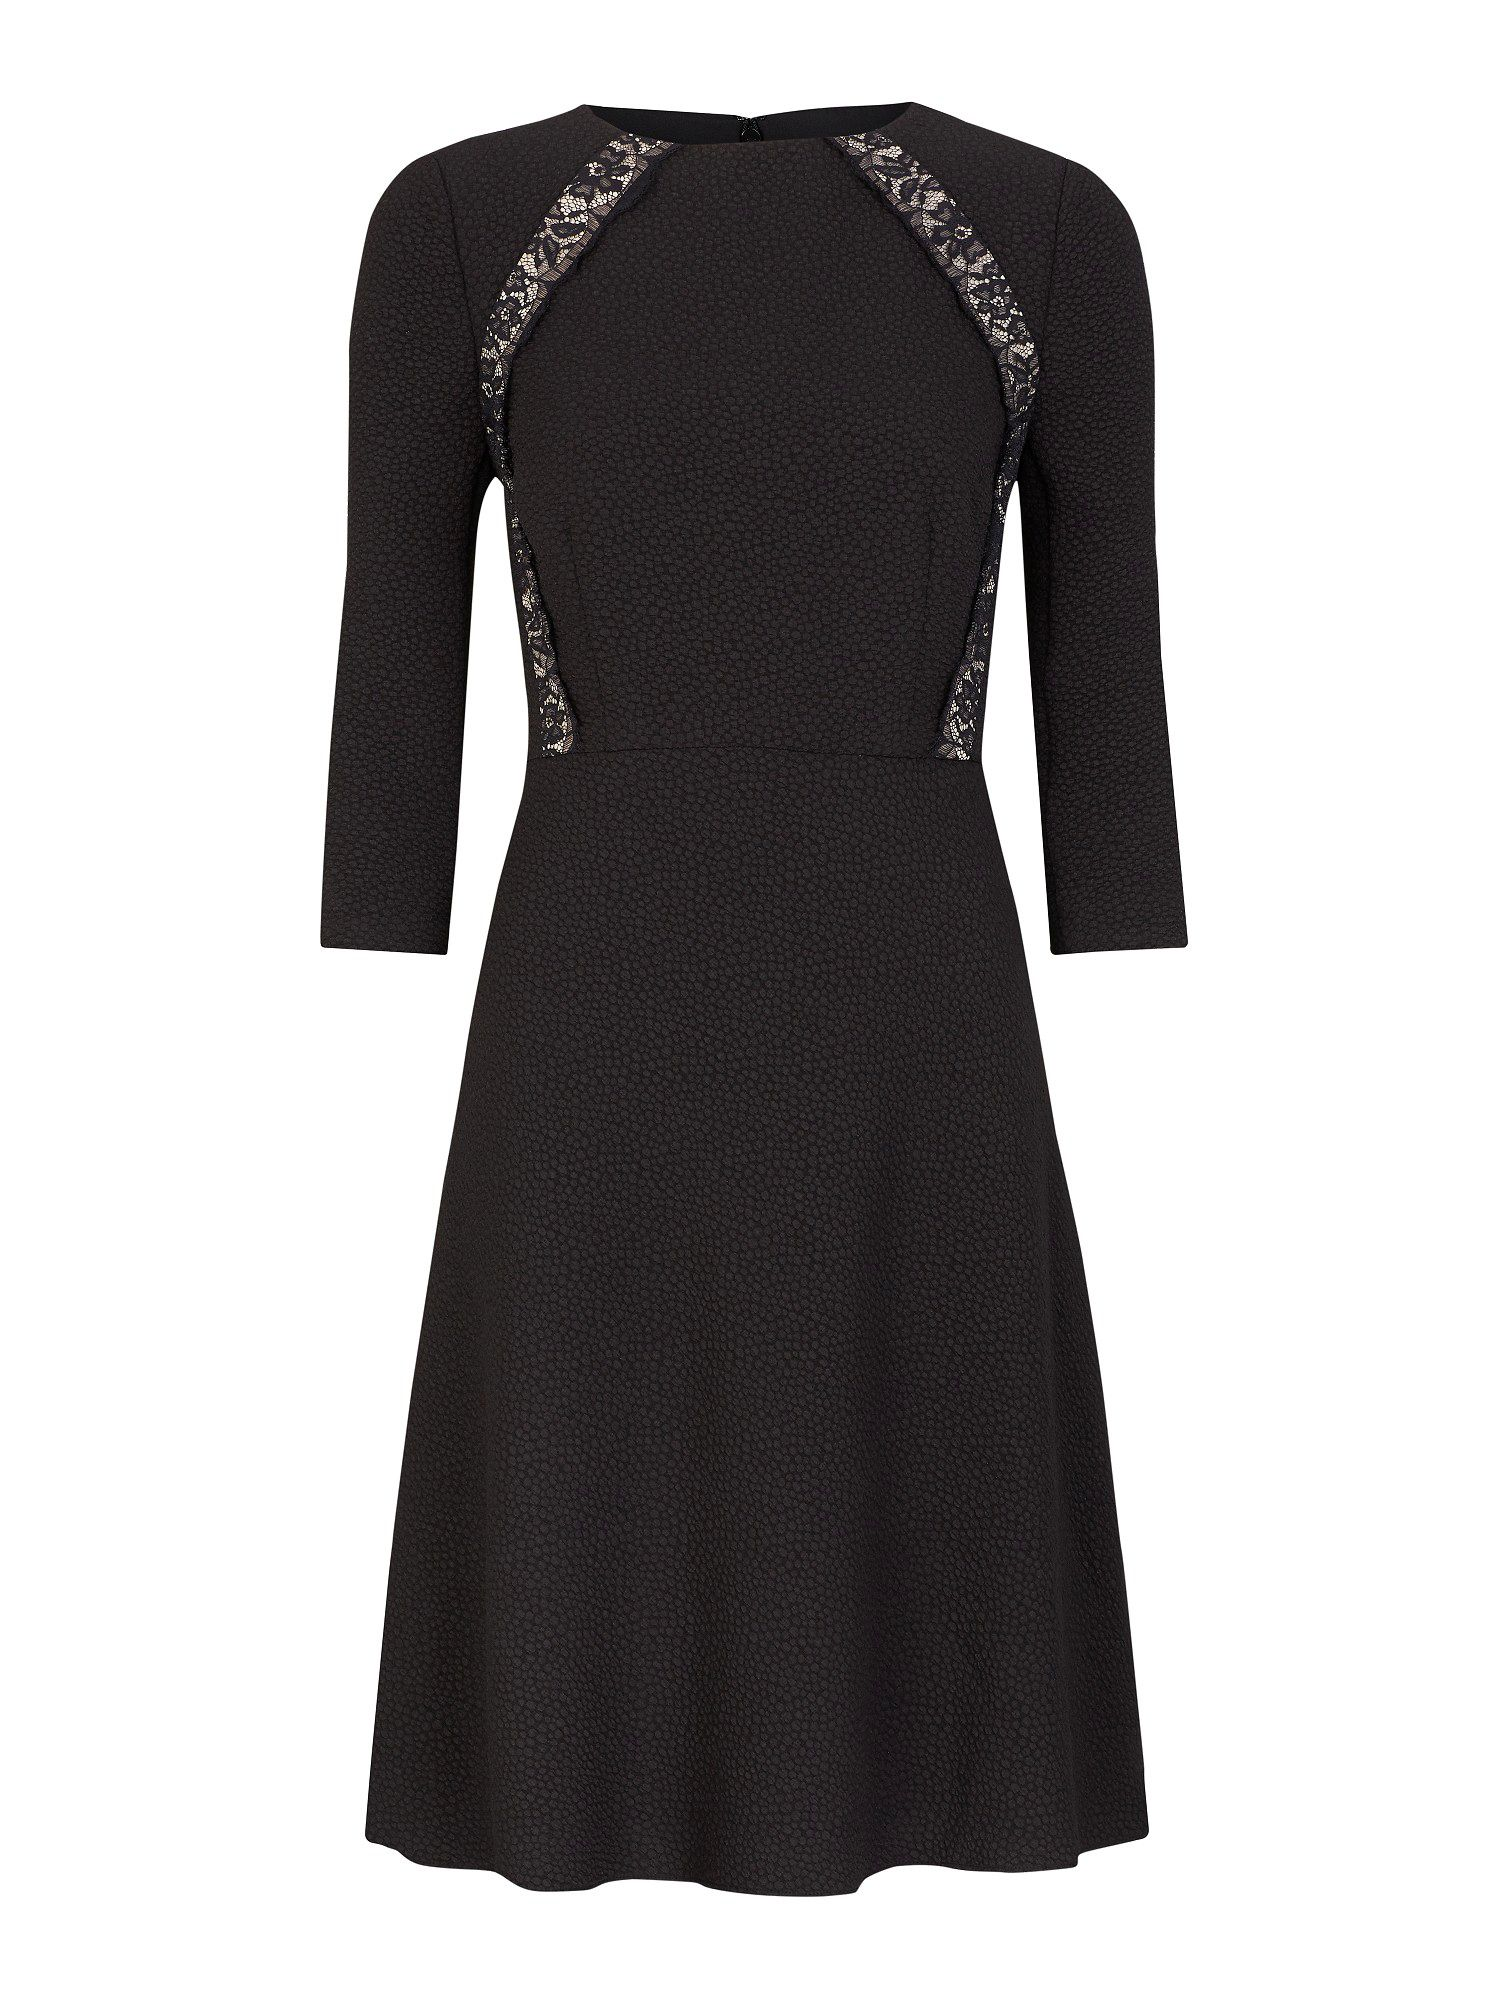 Black flippy lace insert dress